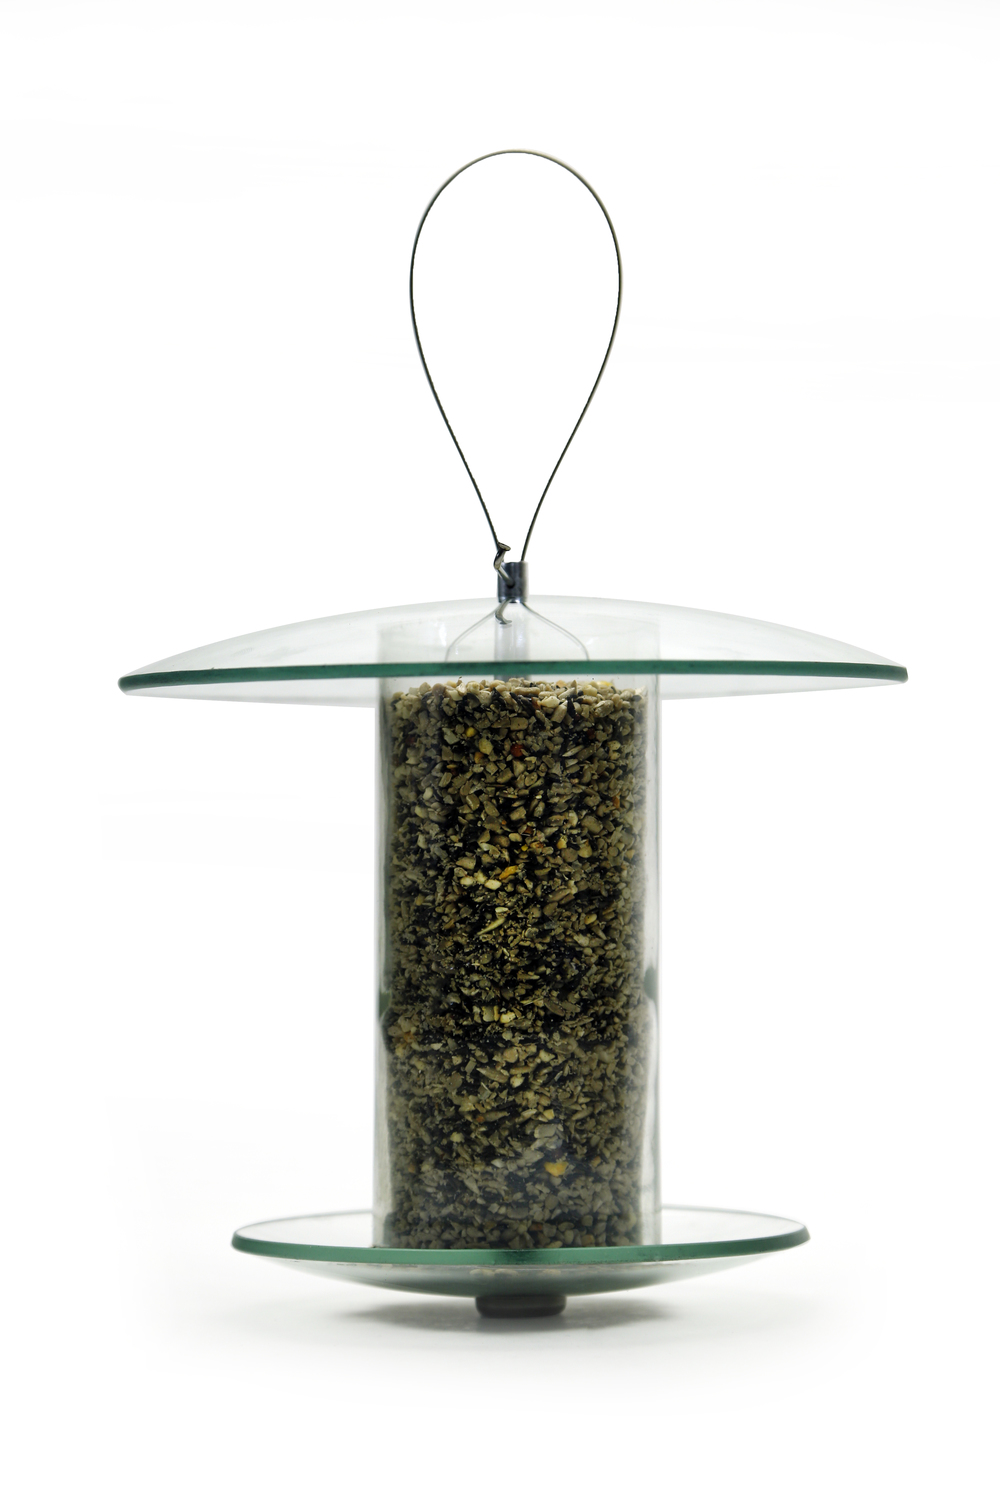 Adam Boroughs Peck Bird Feeder